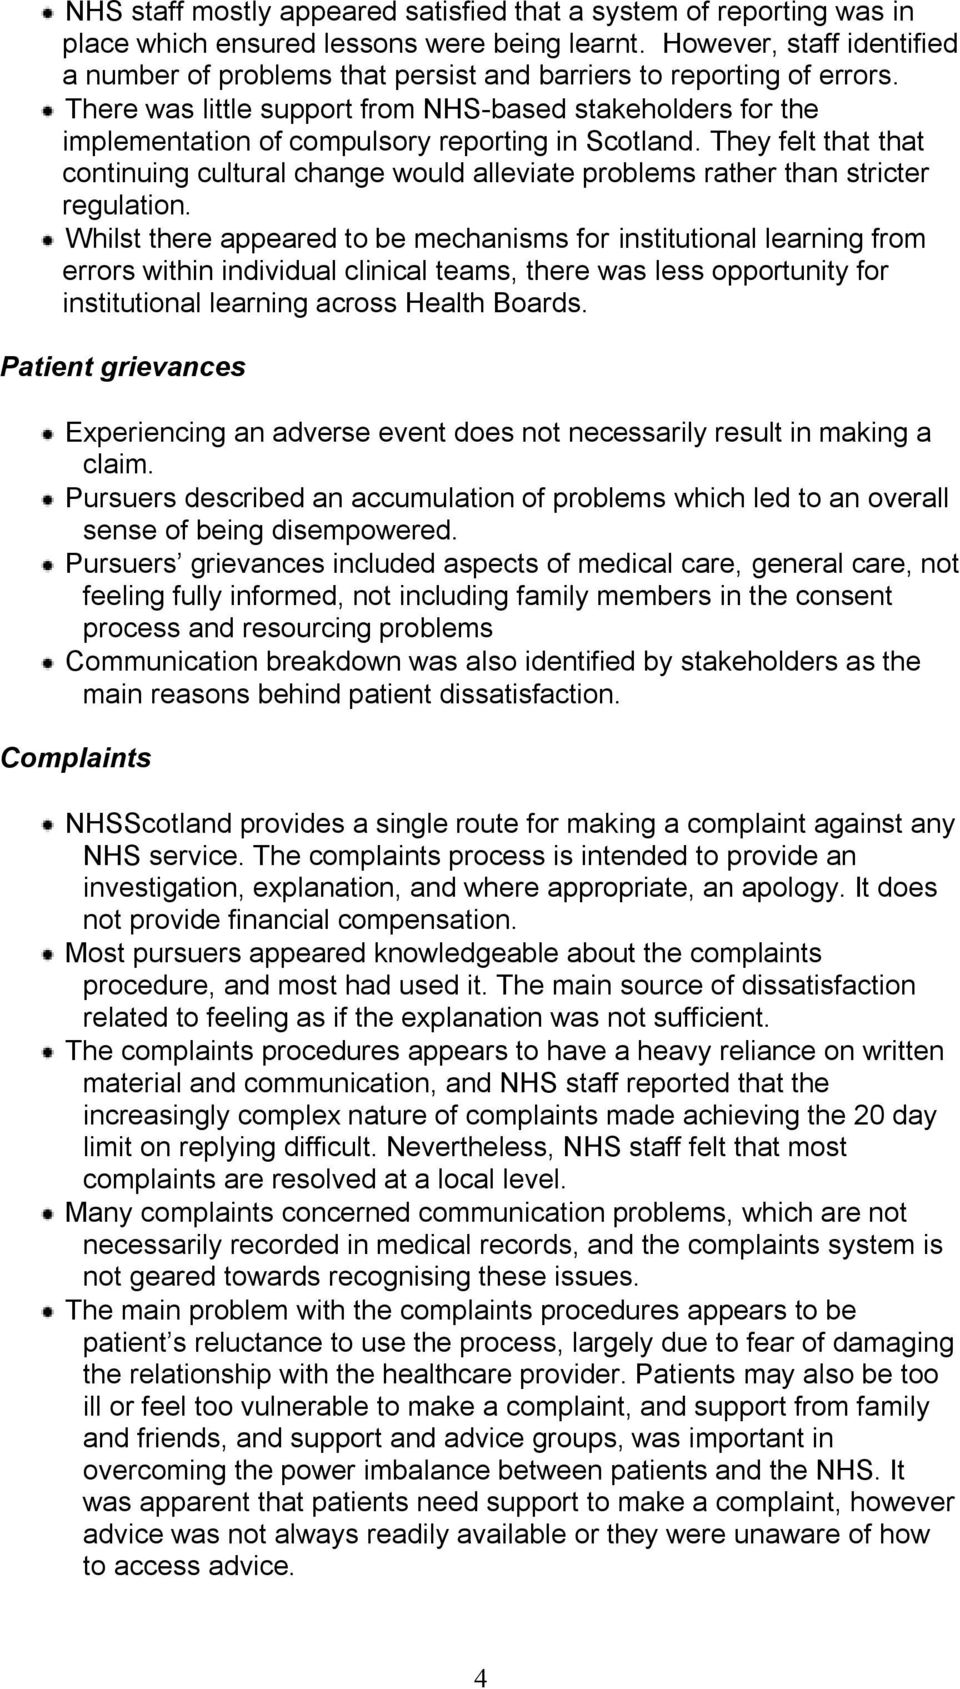 There was little support from NHS-based stakeholders for the implementation of compulsory reporting in Scotland.